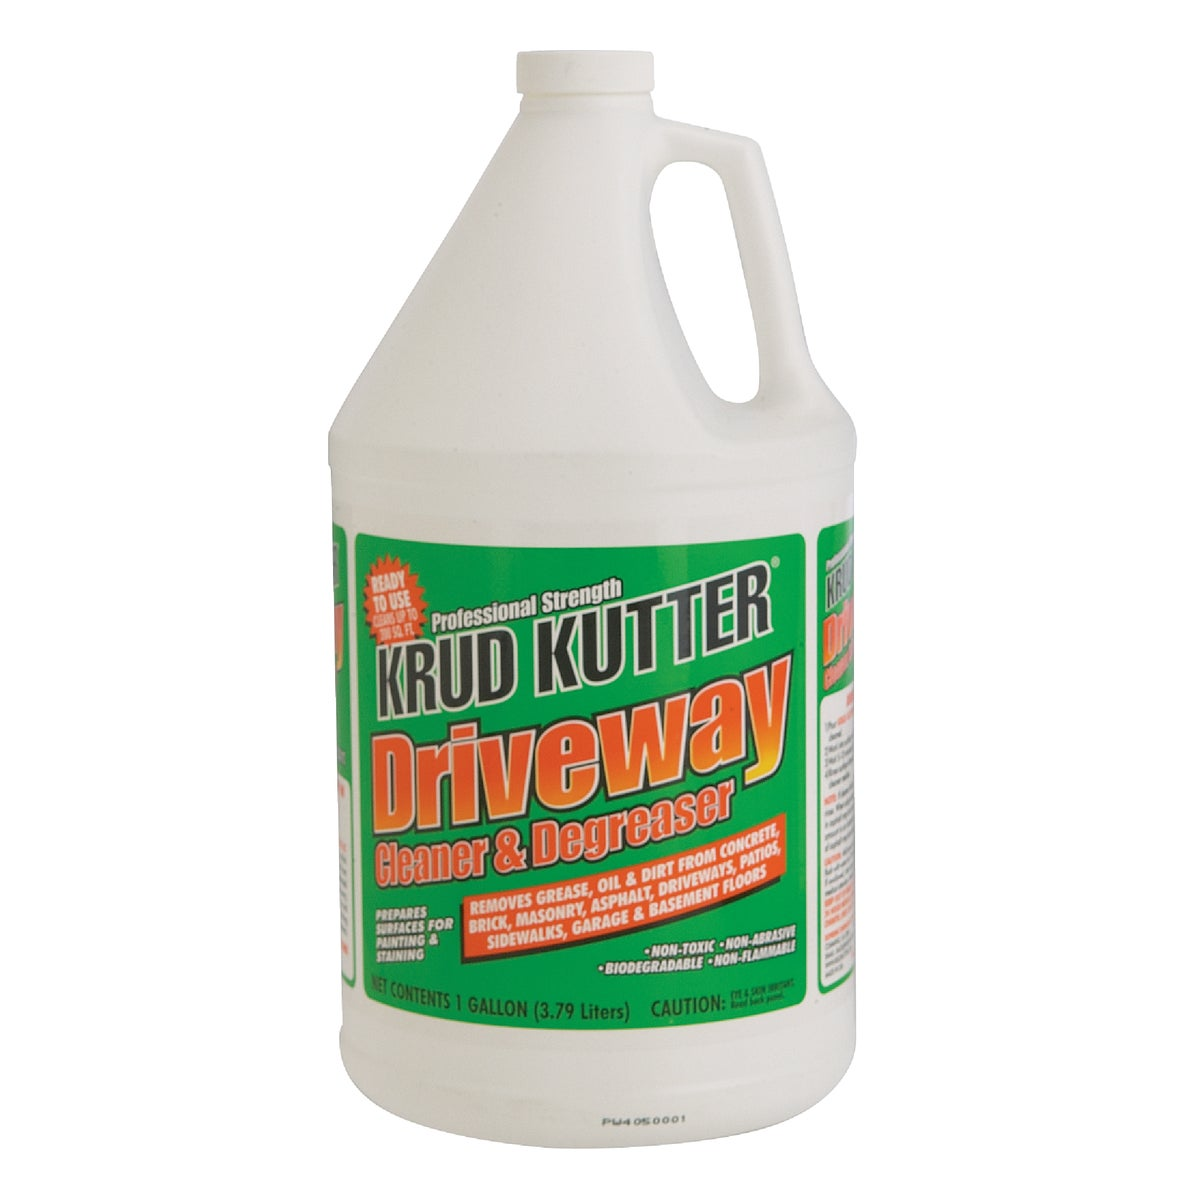 DRIVWY CLEANER/DEGREASER